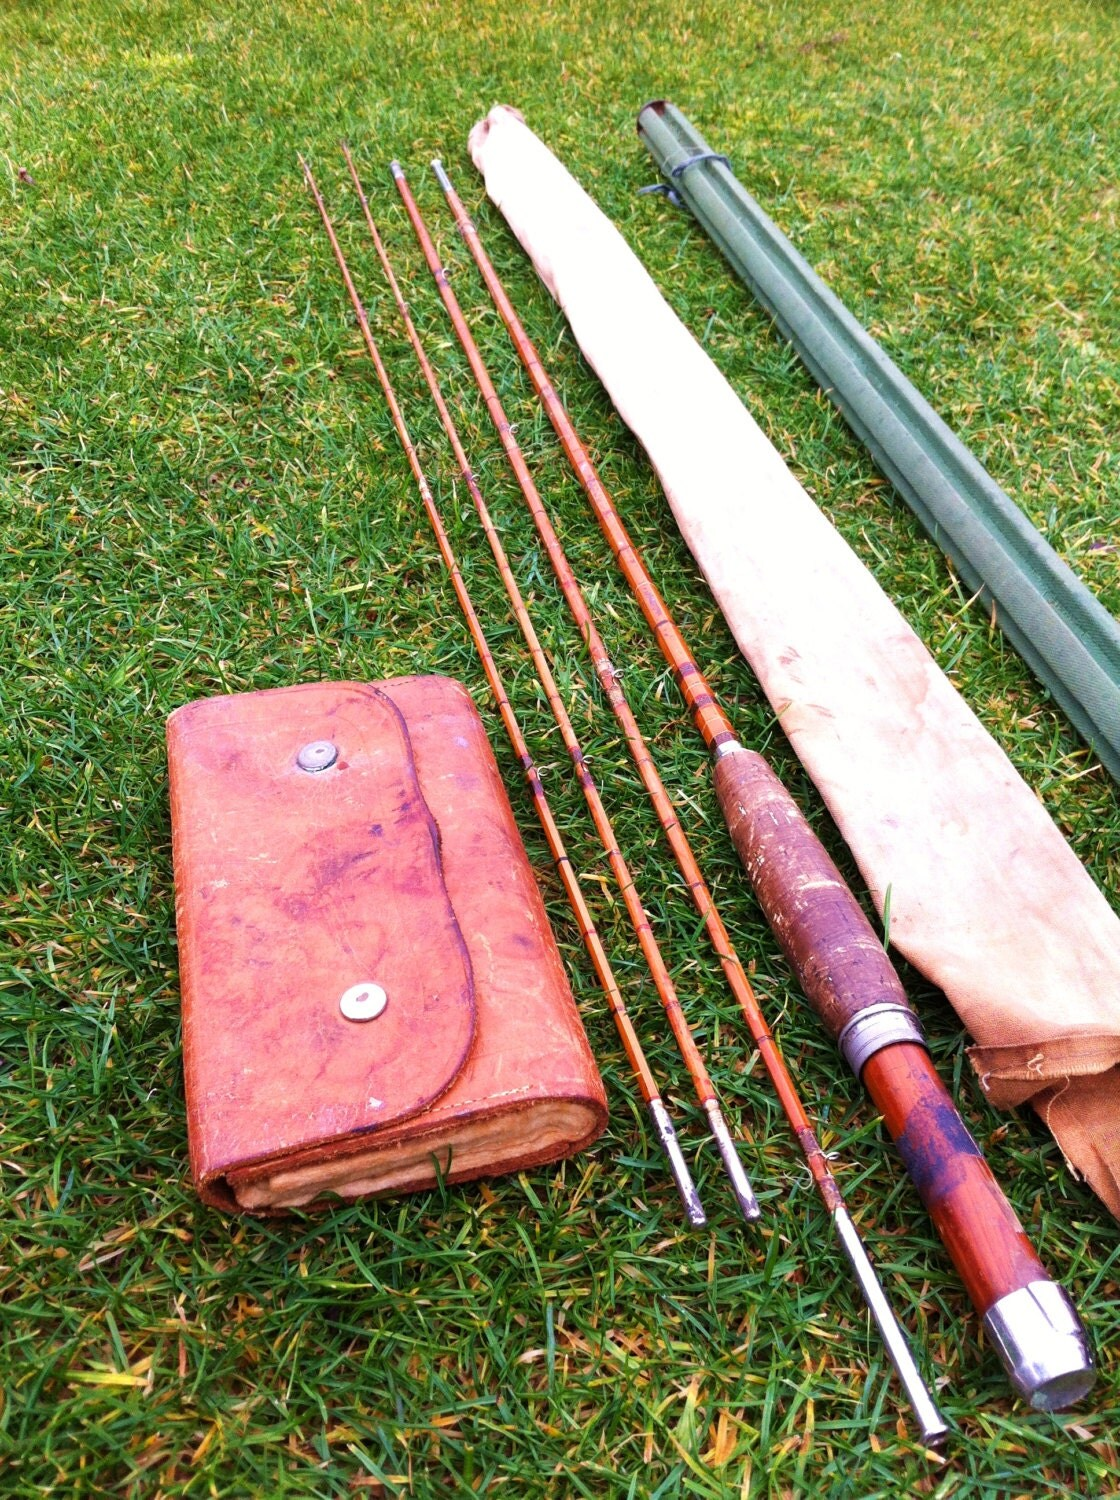 Antique 1930 39 s bamboo fly fishing rod 910 39 2 by for Antique bamboo fishing rods